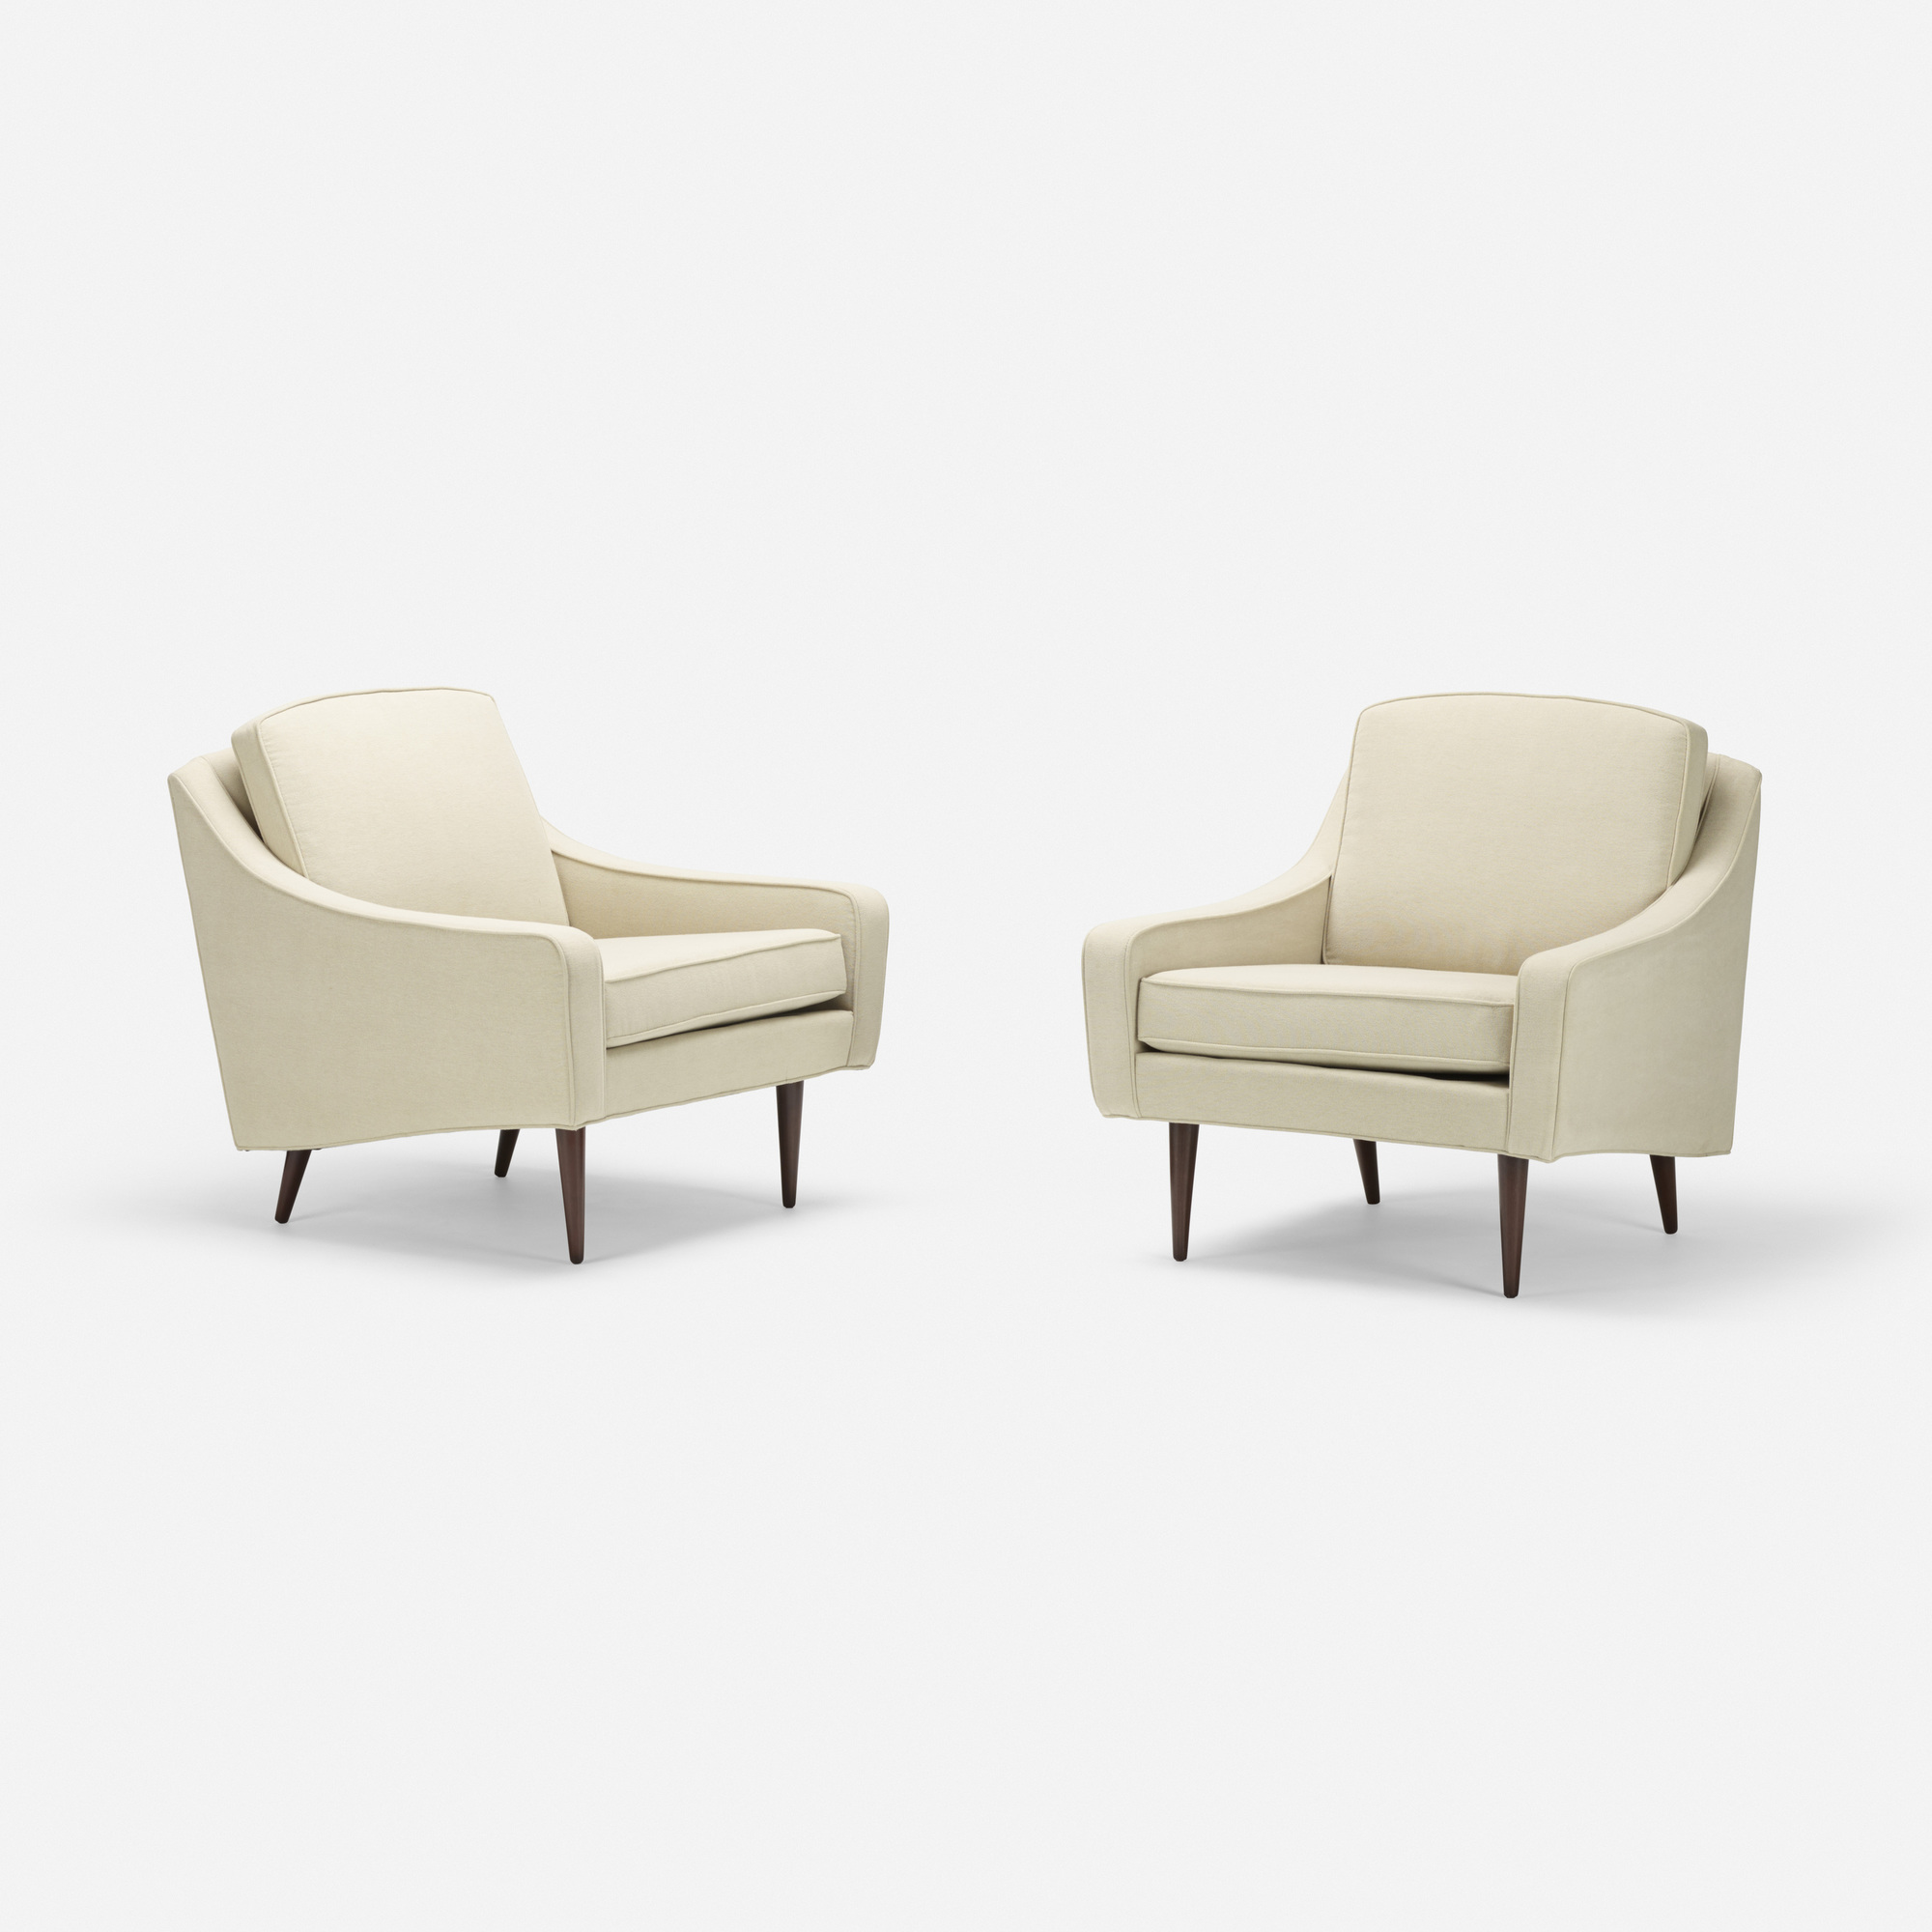 168: Milo Baughman / lounge chairs, pair (2 of 4)